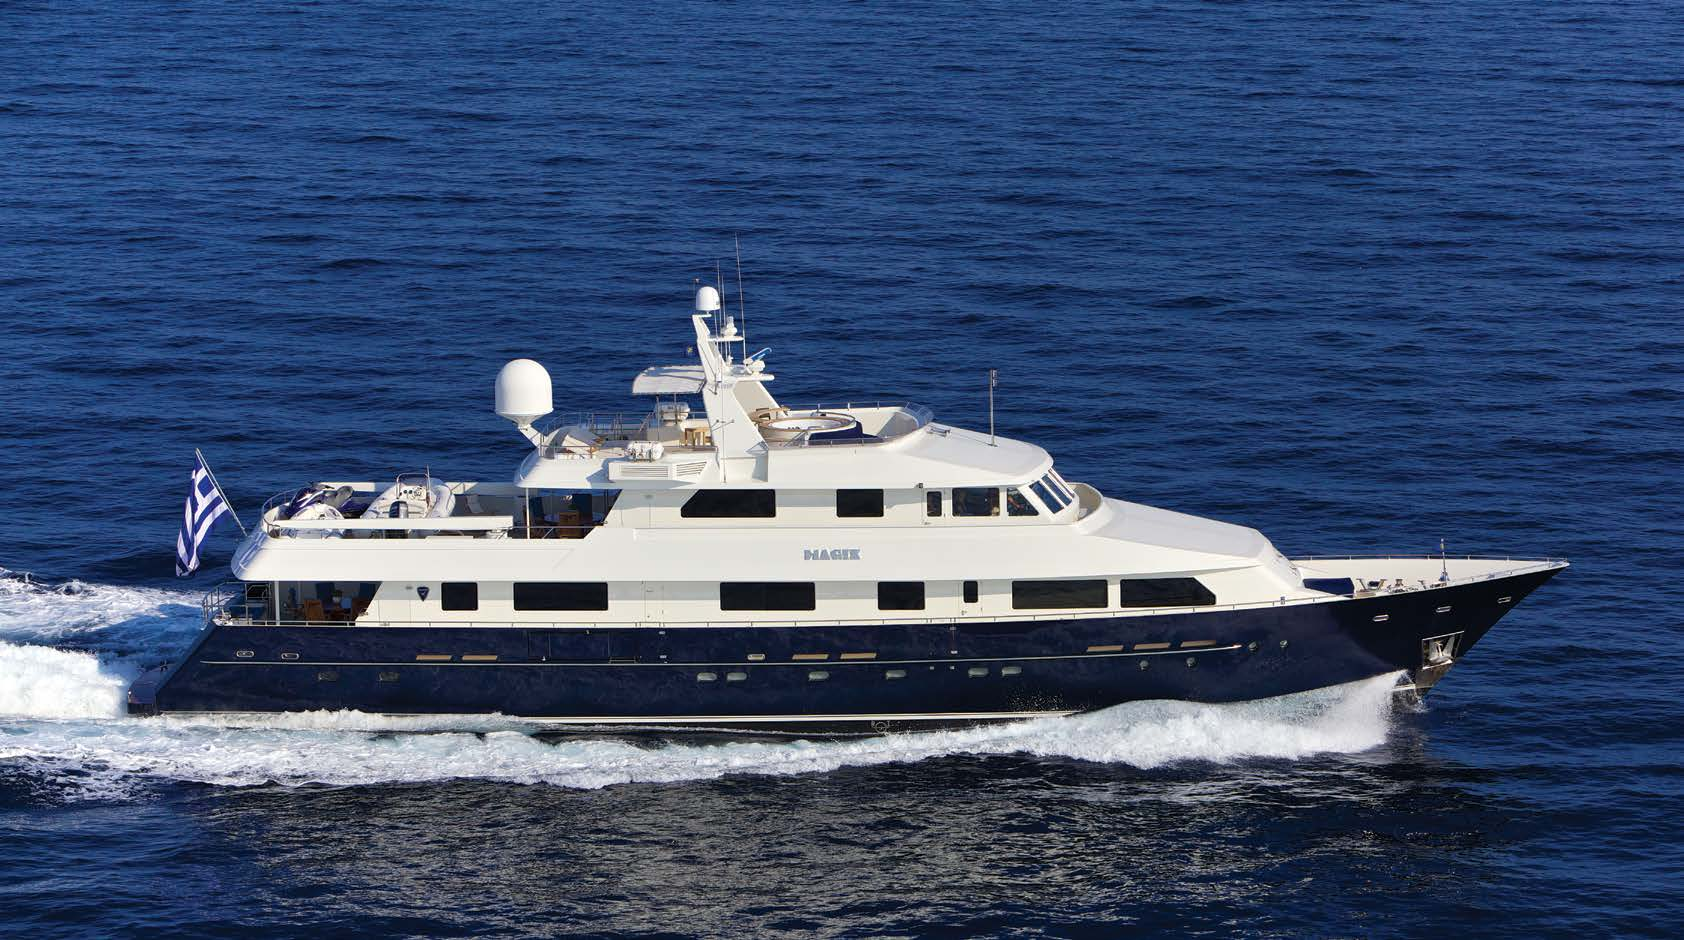 MAGIX   GUESTS: 10 | CABINS: 5 | CREW: 7  LOA: 37.80m | SPEED: 14kn | PRICE: €79,000 p/w